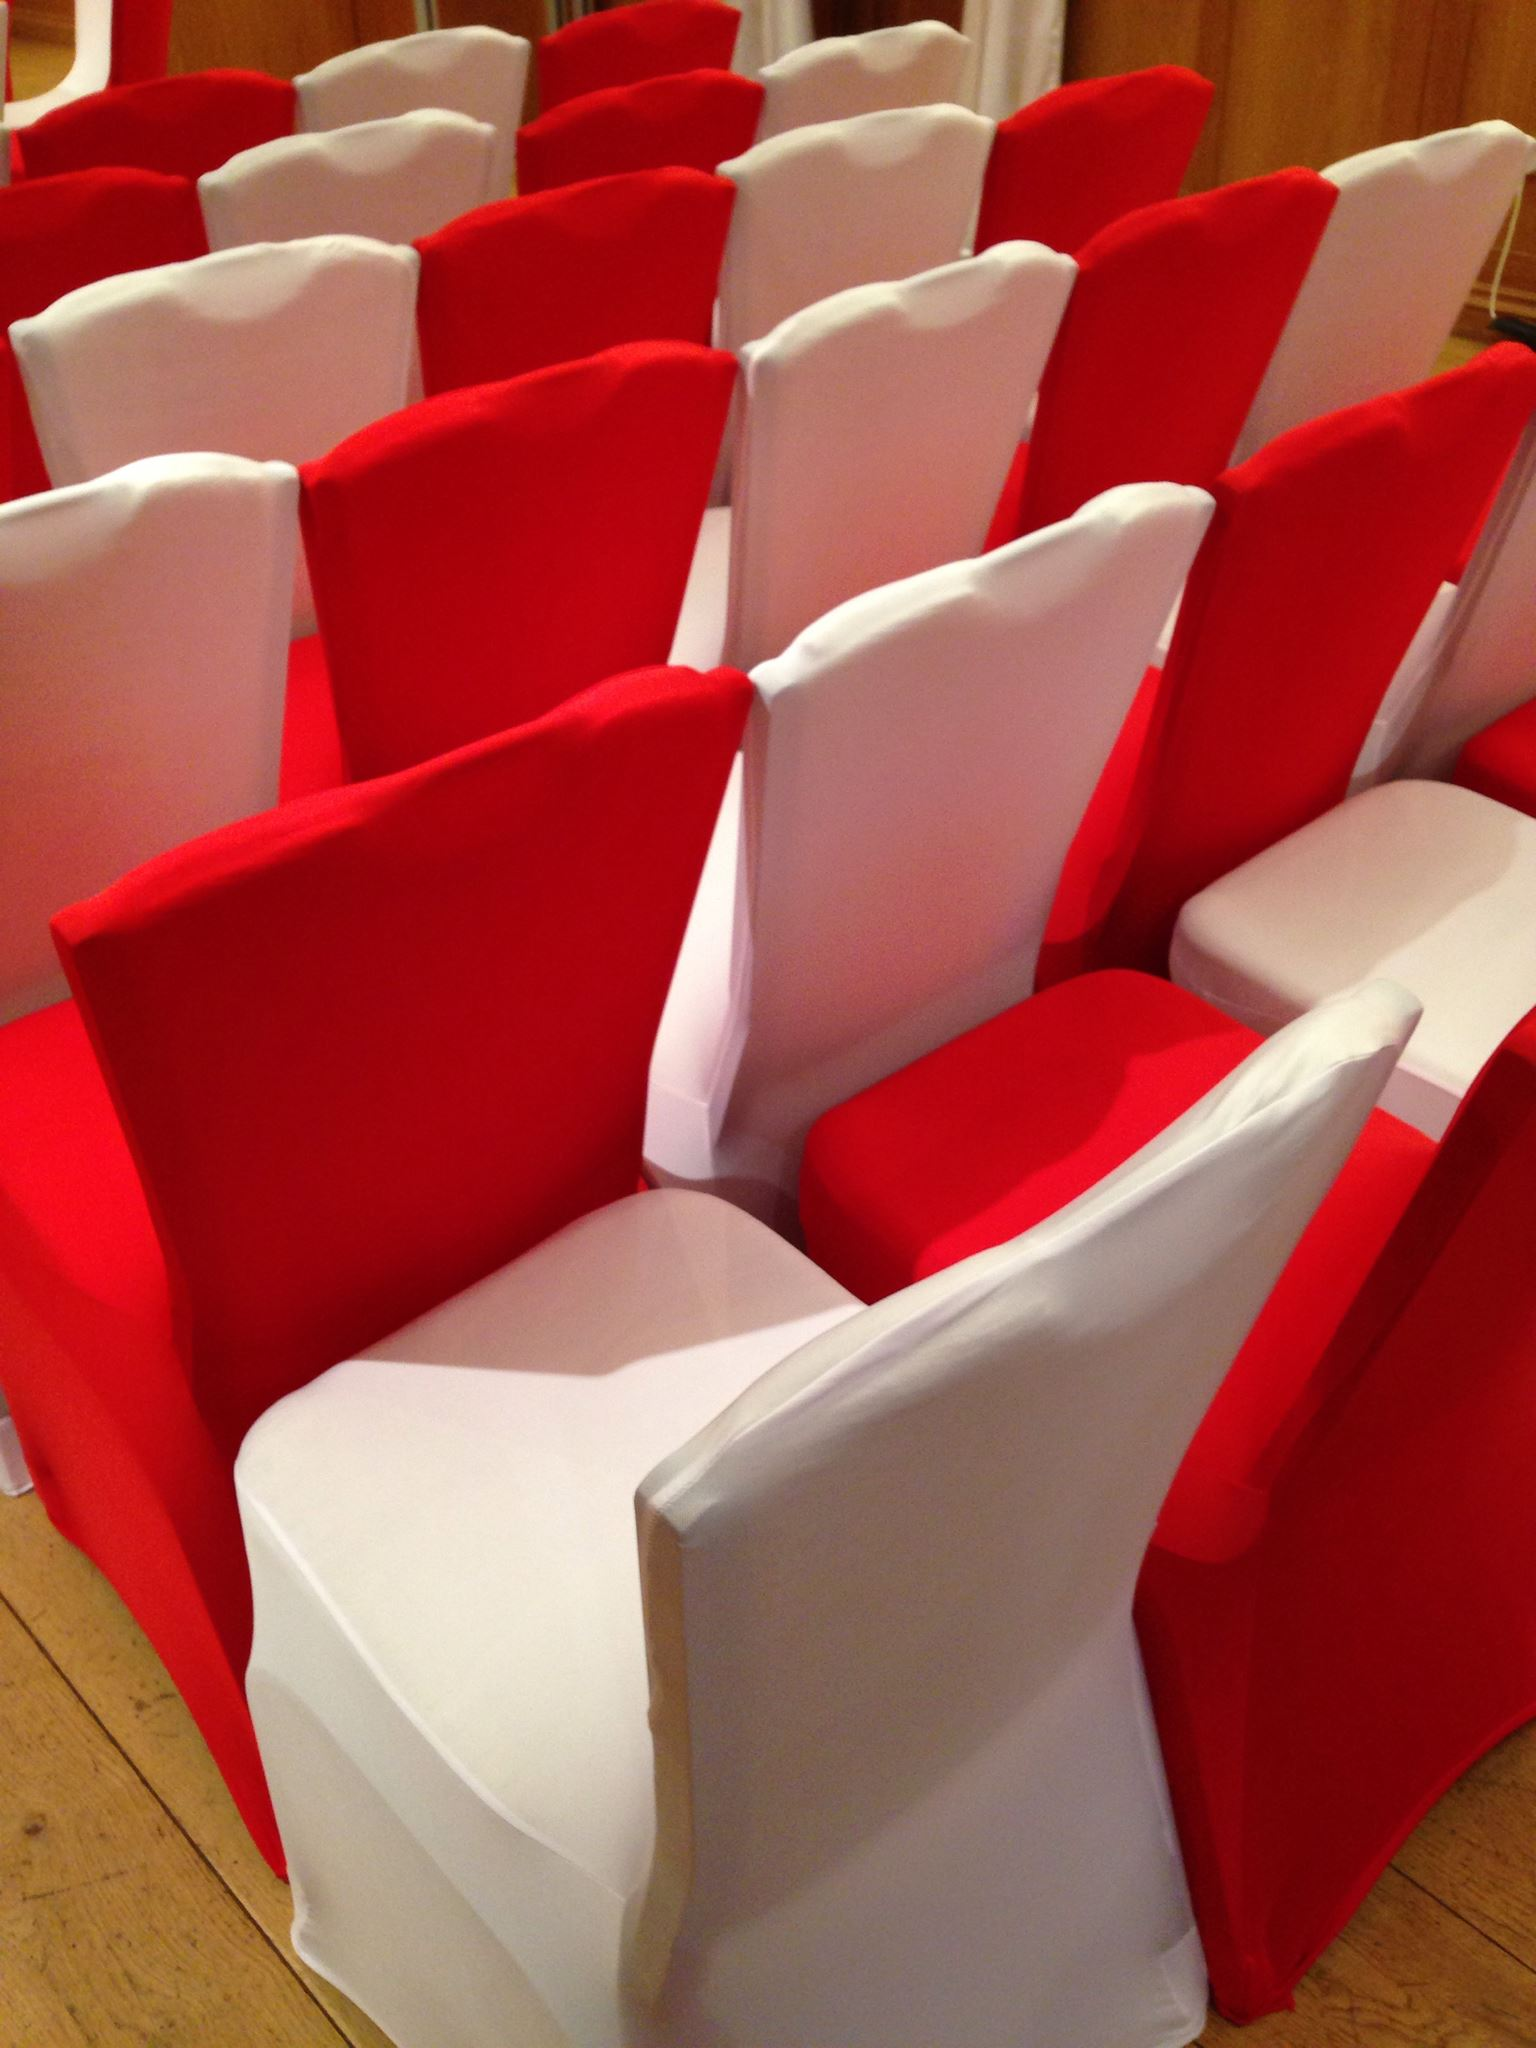 Spandax chair cover Hire